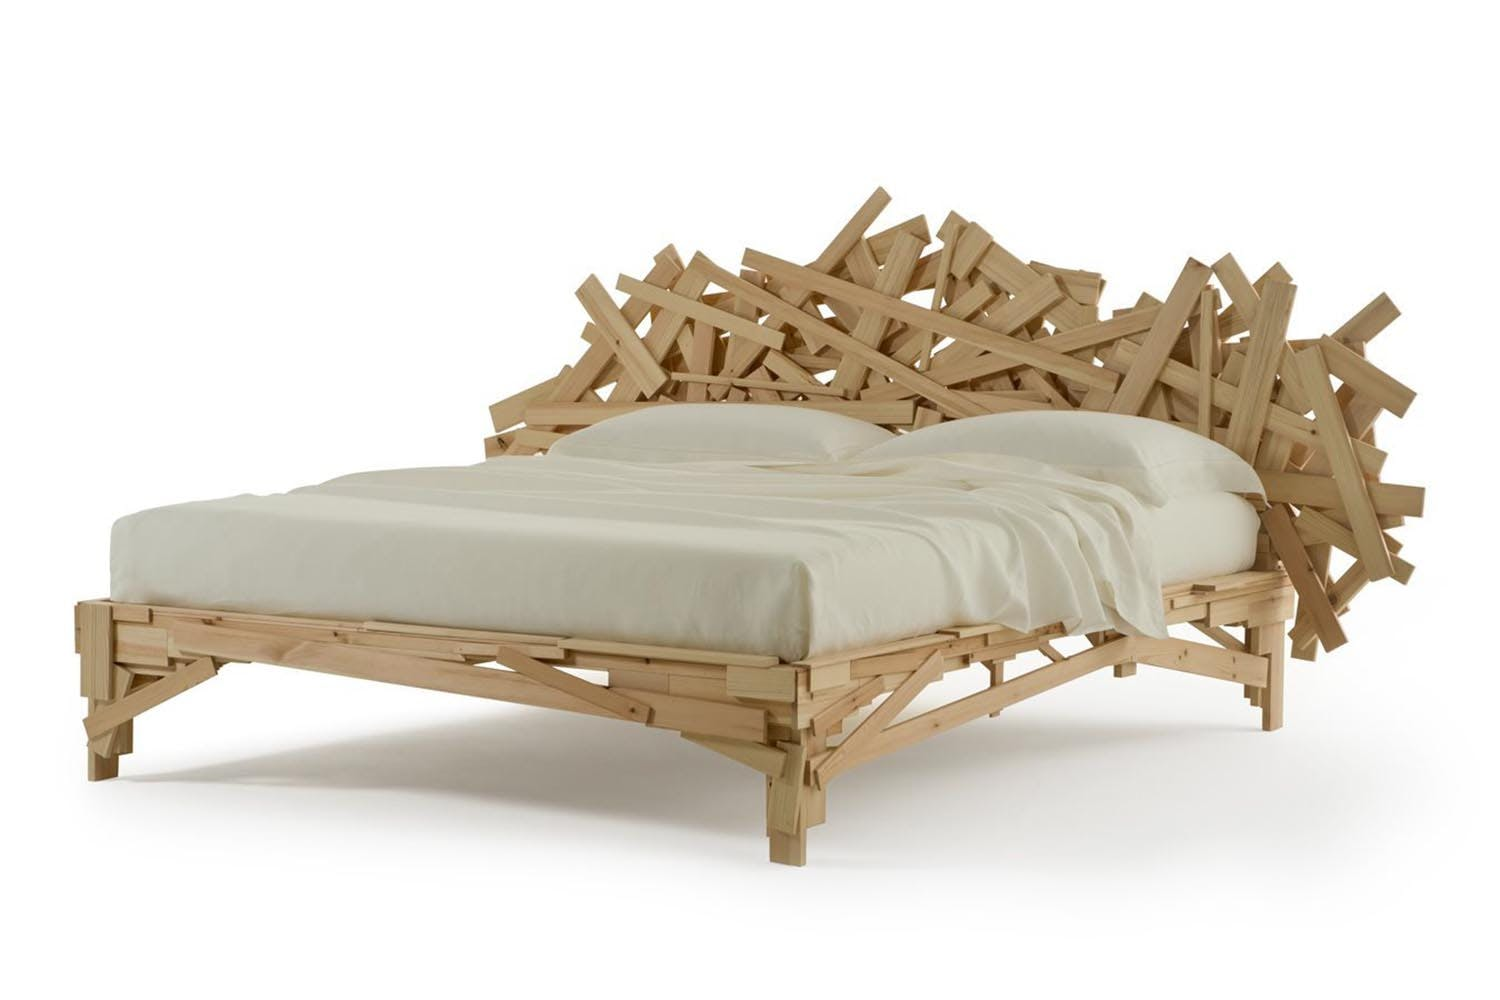 Favela Bed By F E H Campana For Edra